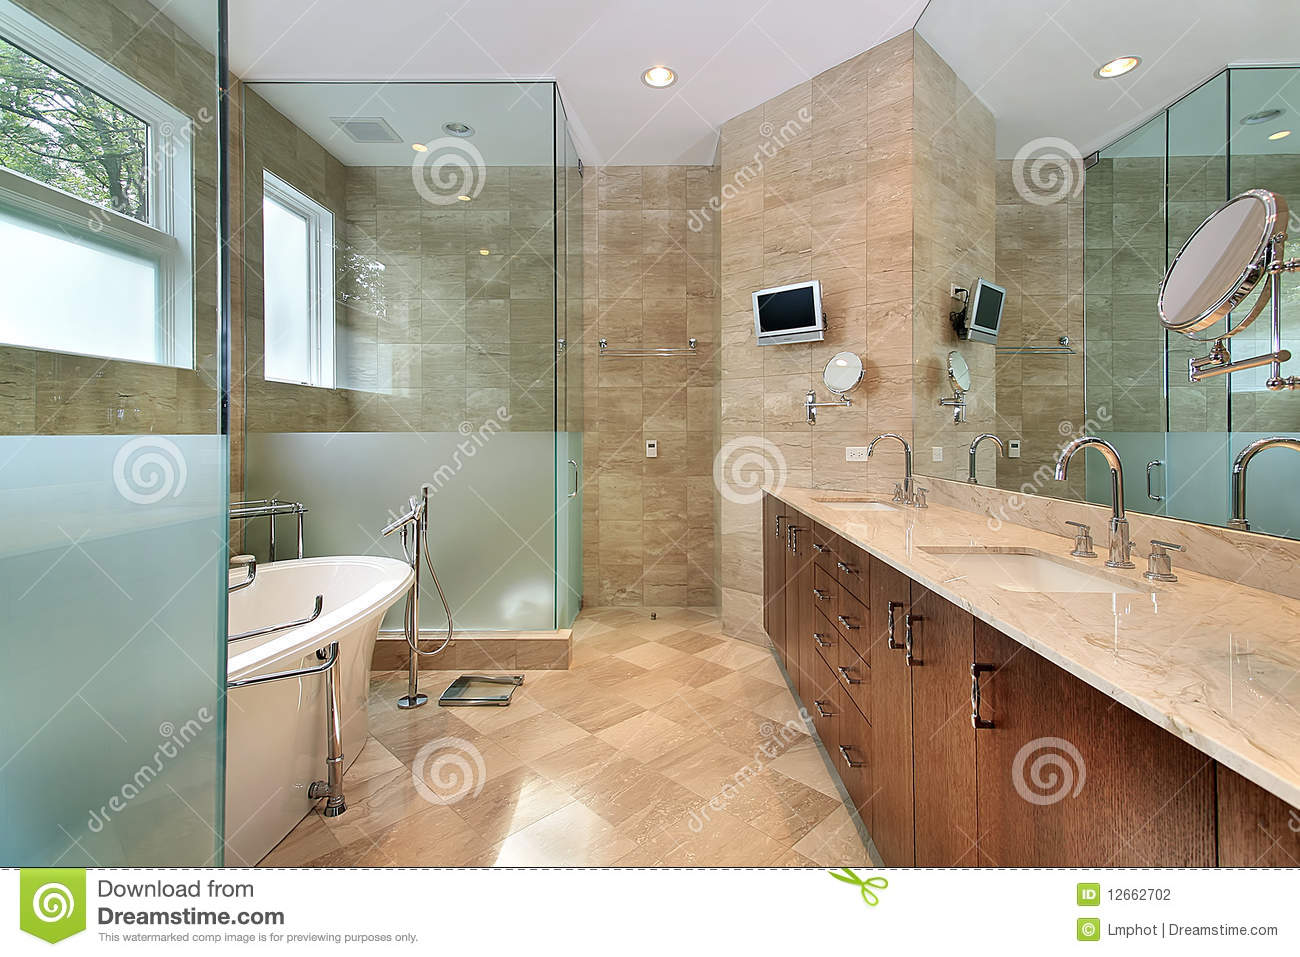 Modern Master Bath With Glass Shower Stock Photo - Image of real ...